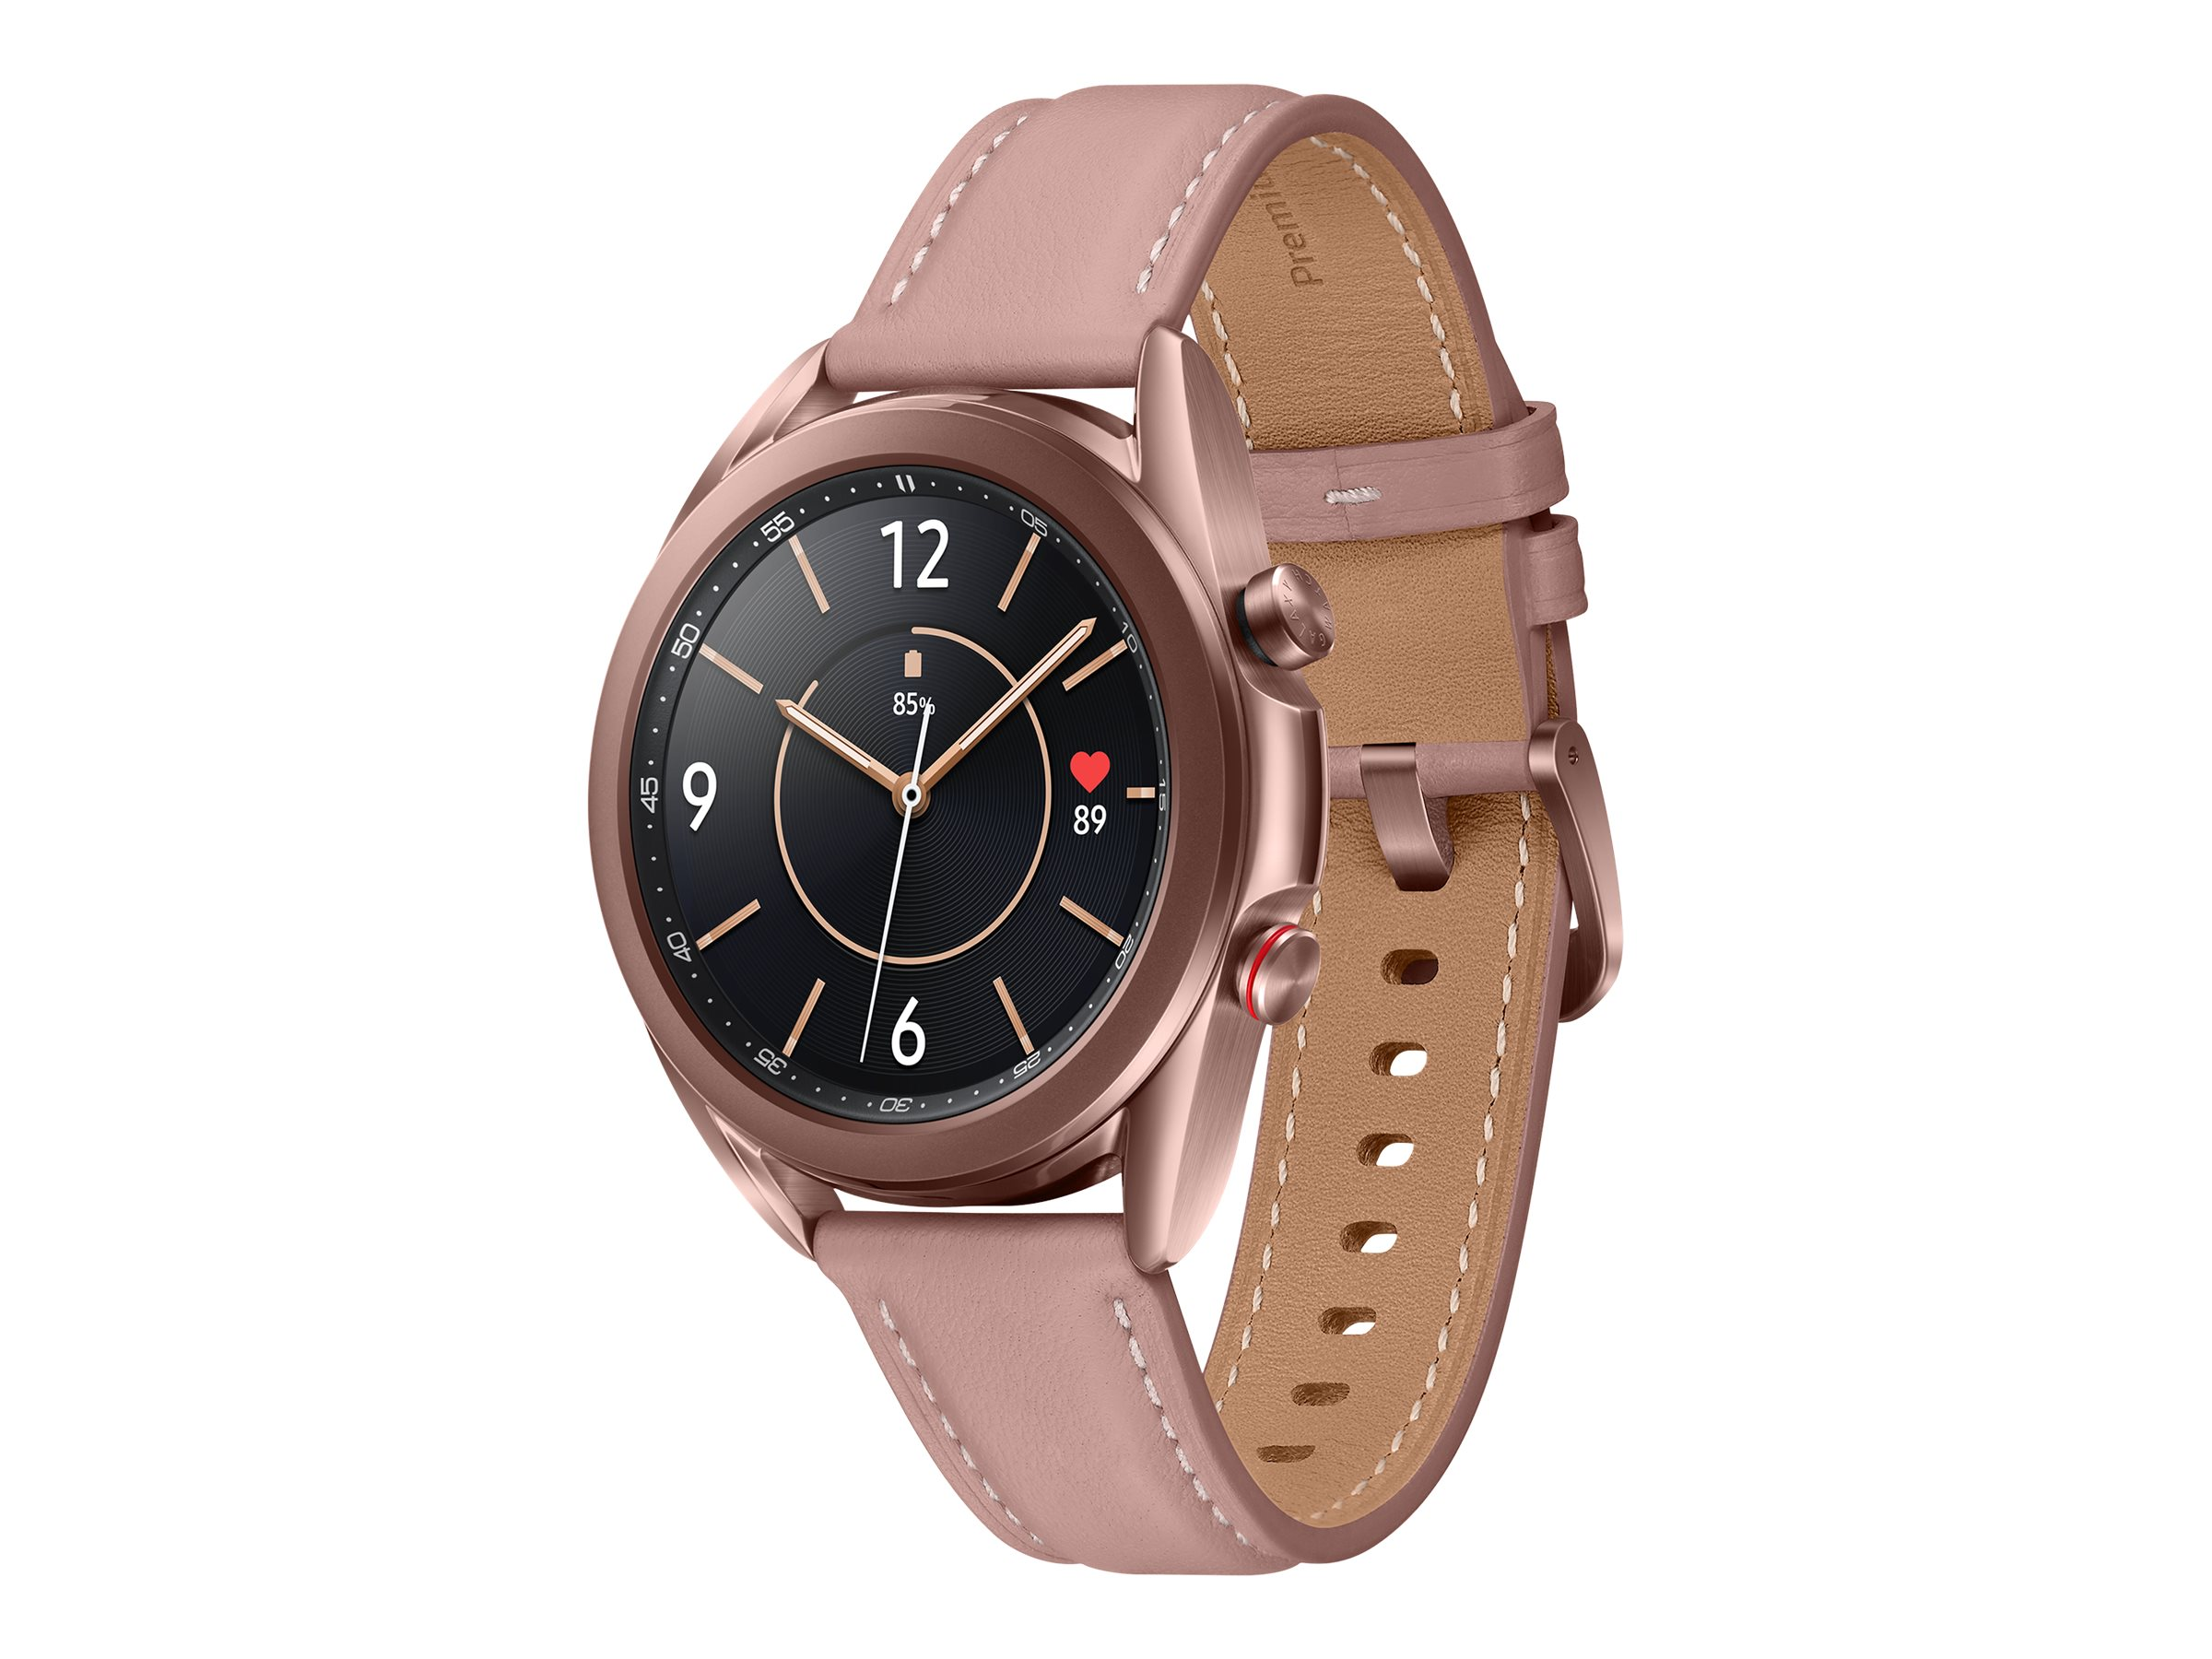 Samsung Galaxy Watch 3 - mystic bronze - smart watch with band - 8 GB - not specified